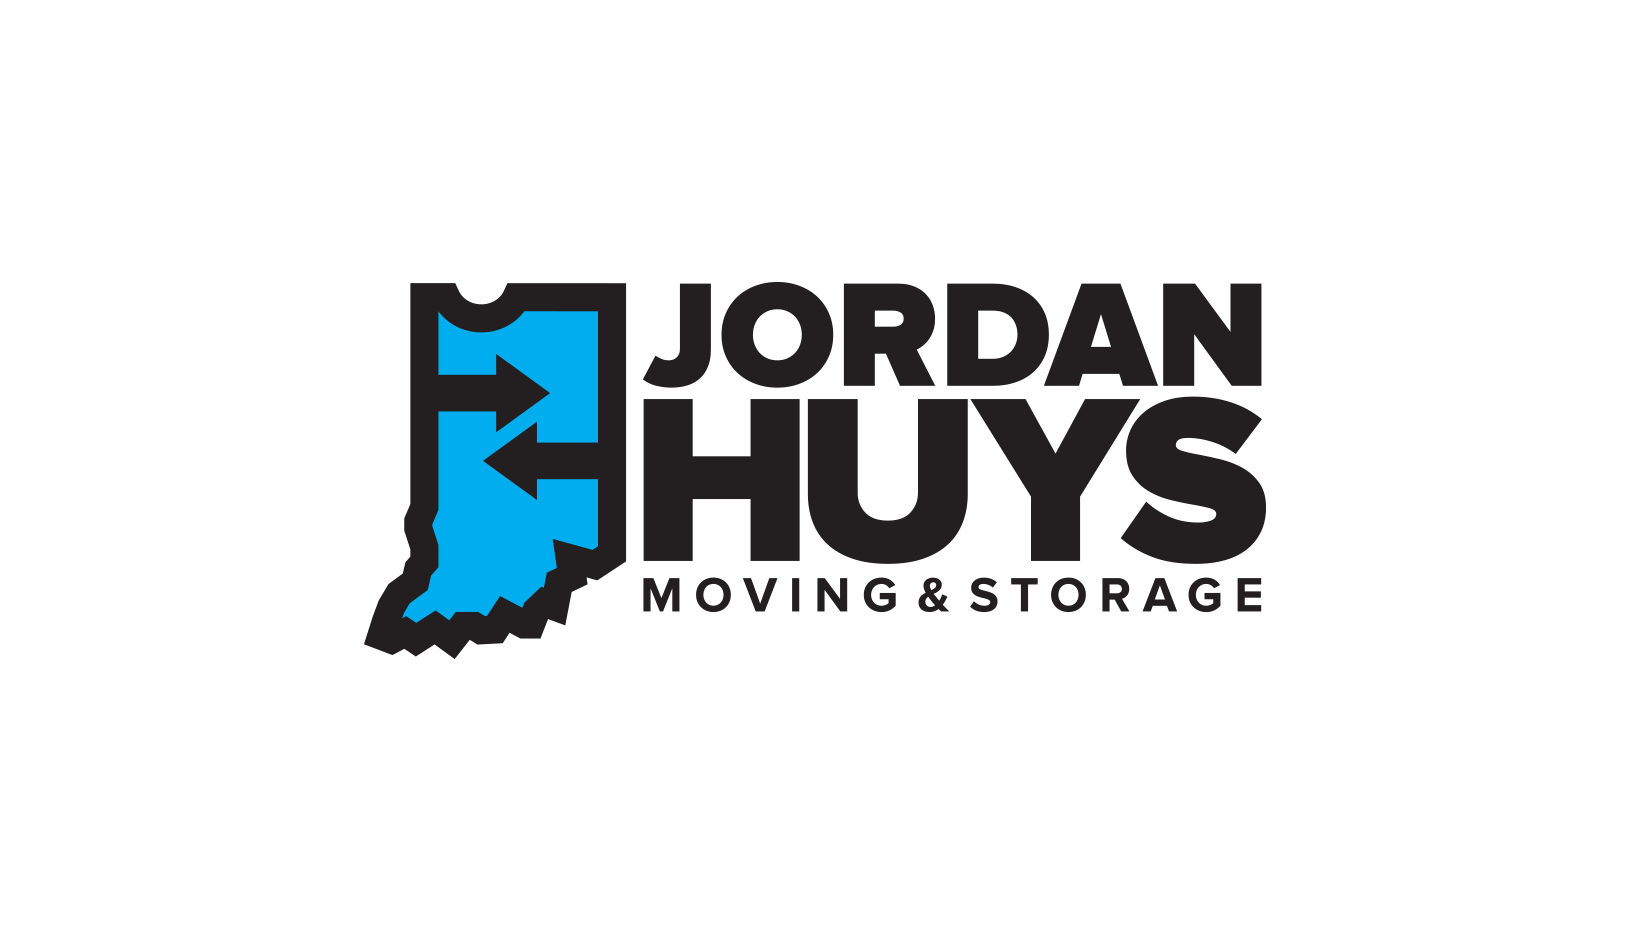 work_logos_JordanHuys.png